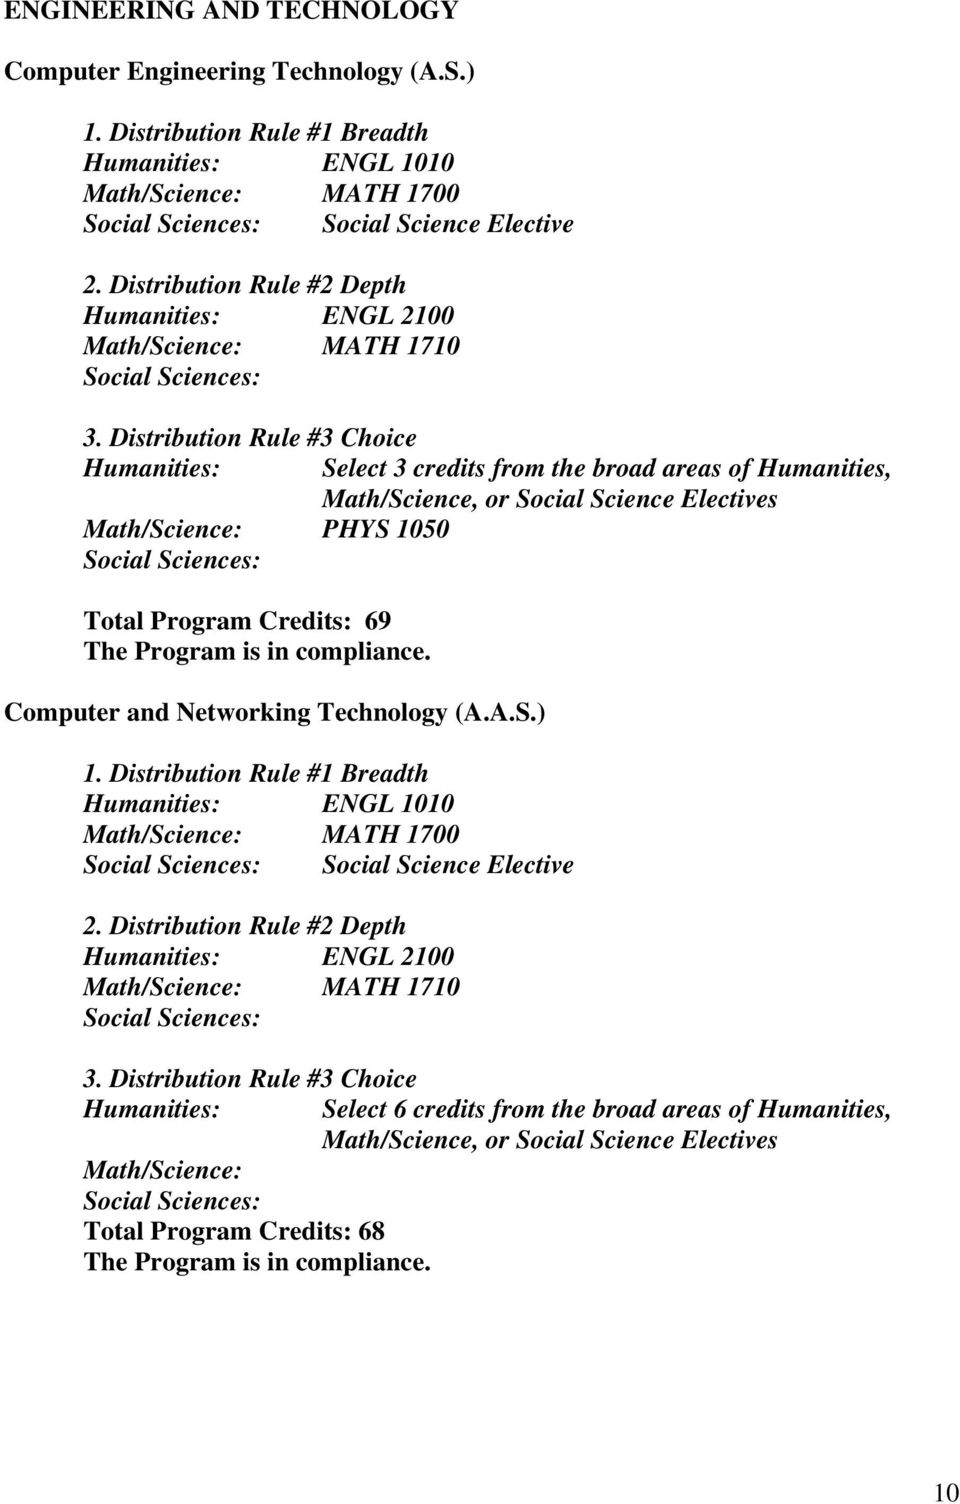 Networking Technology (A.A.S.